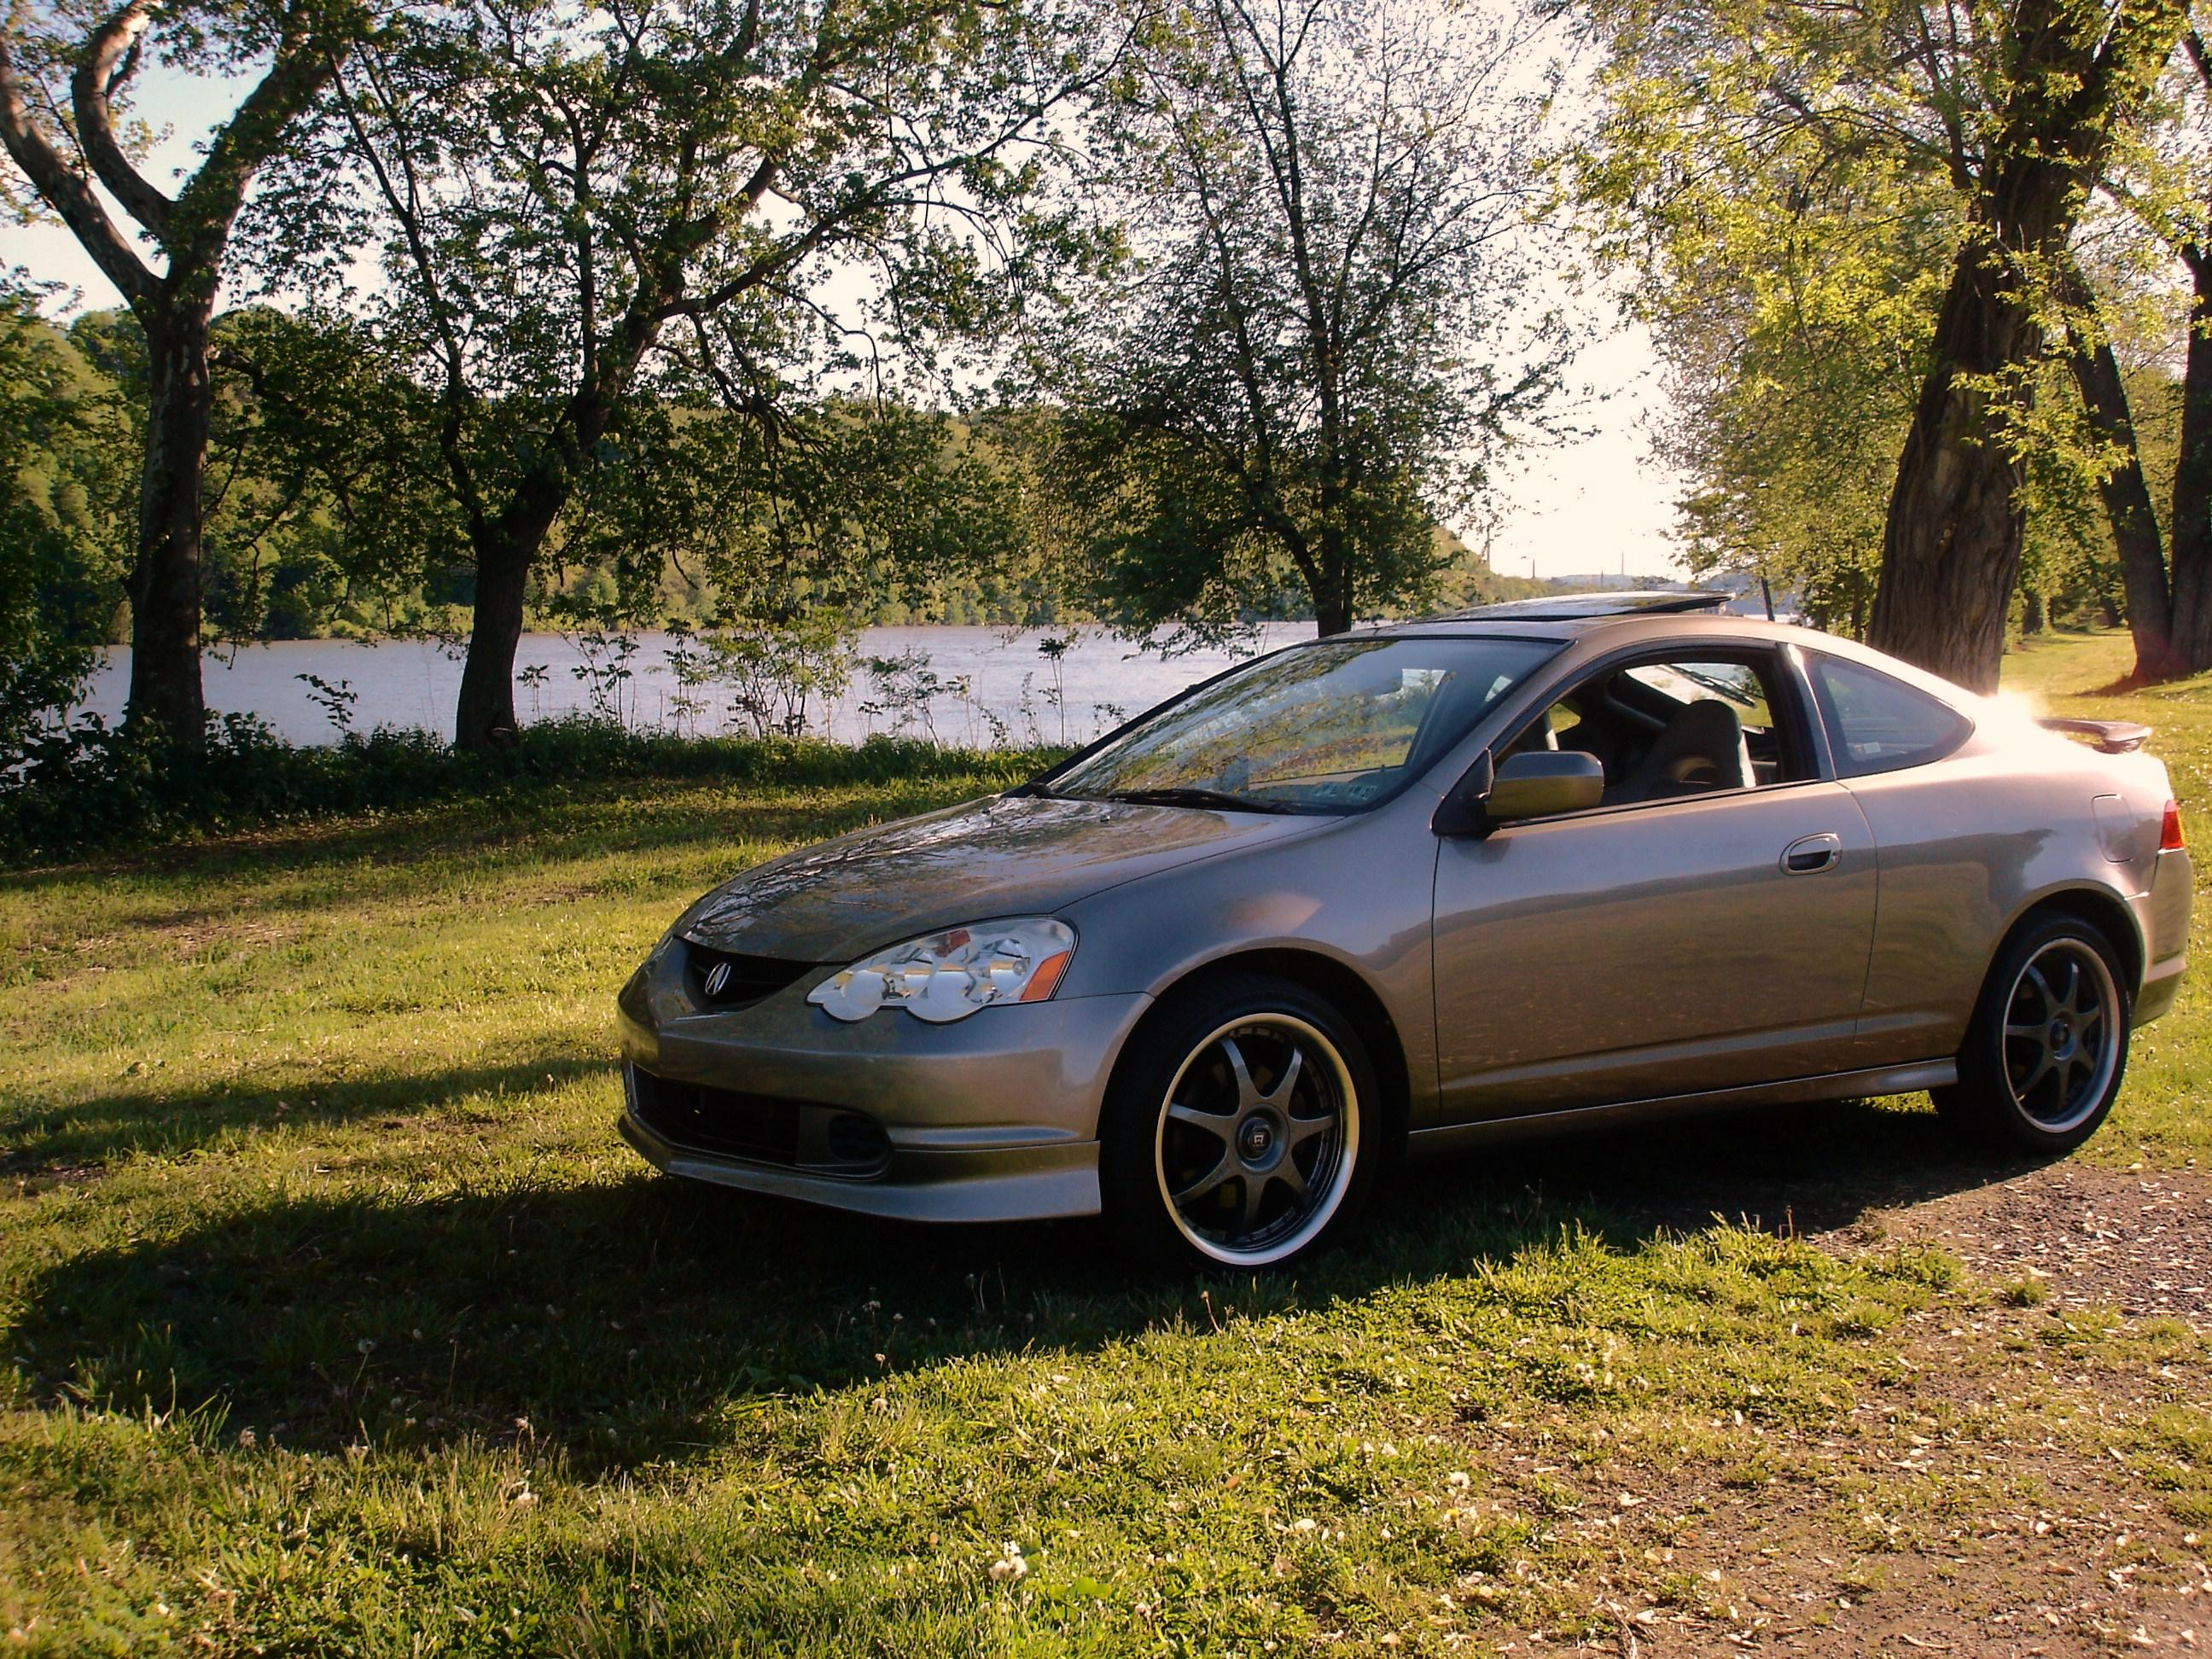 2004 Accord V6 CM8 vs Rsx Type S